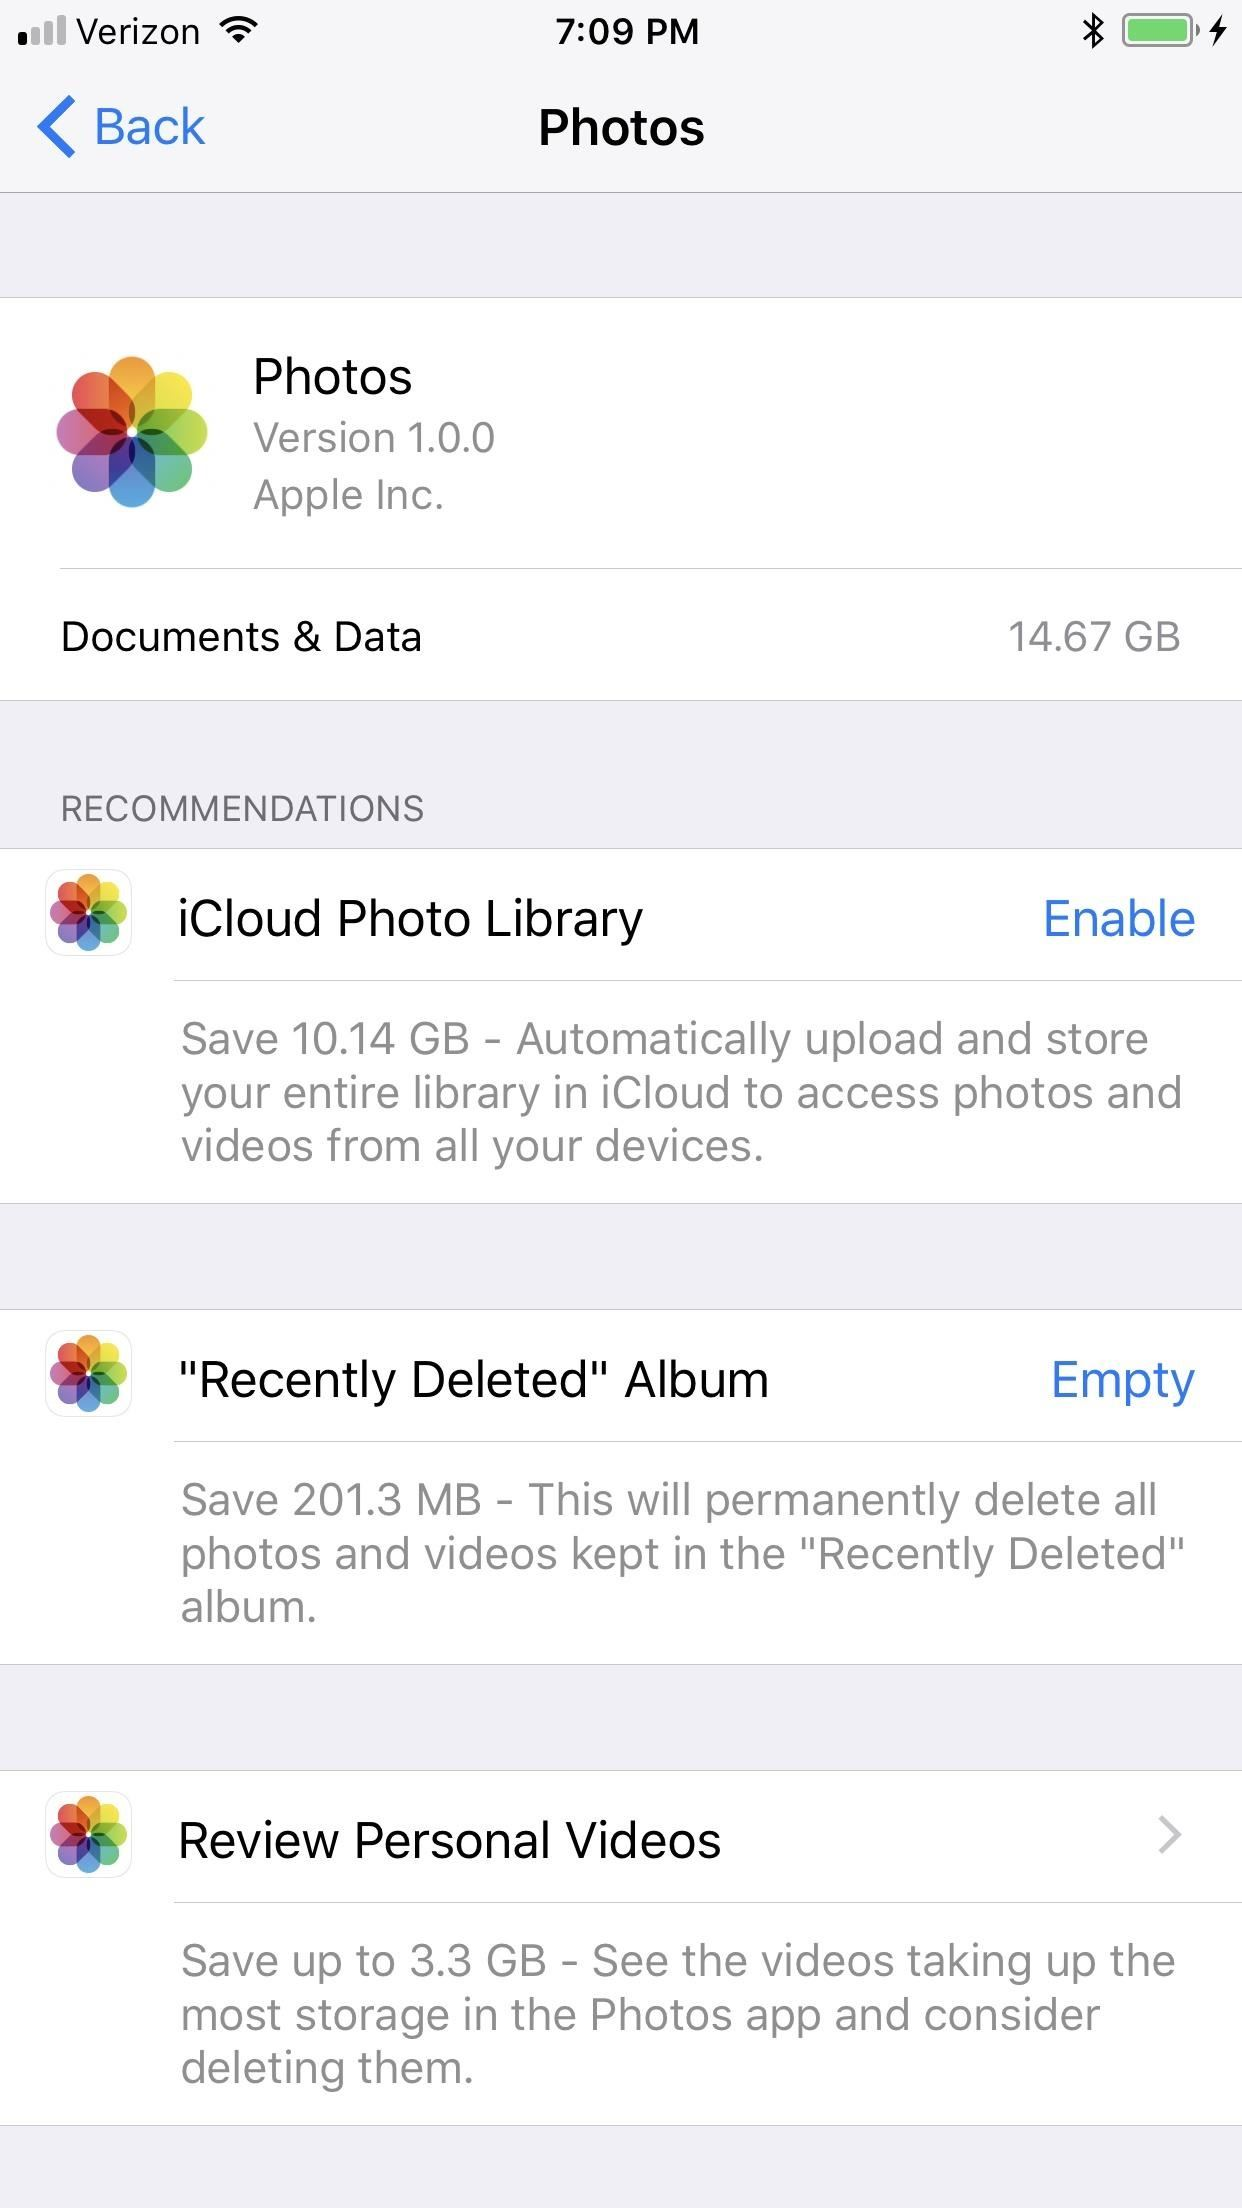 iOS 11 Just Upgraded the iPhone's Storage Management System with More Features